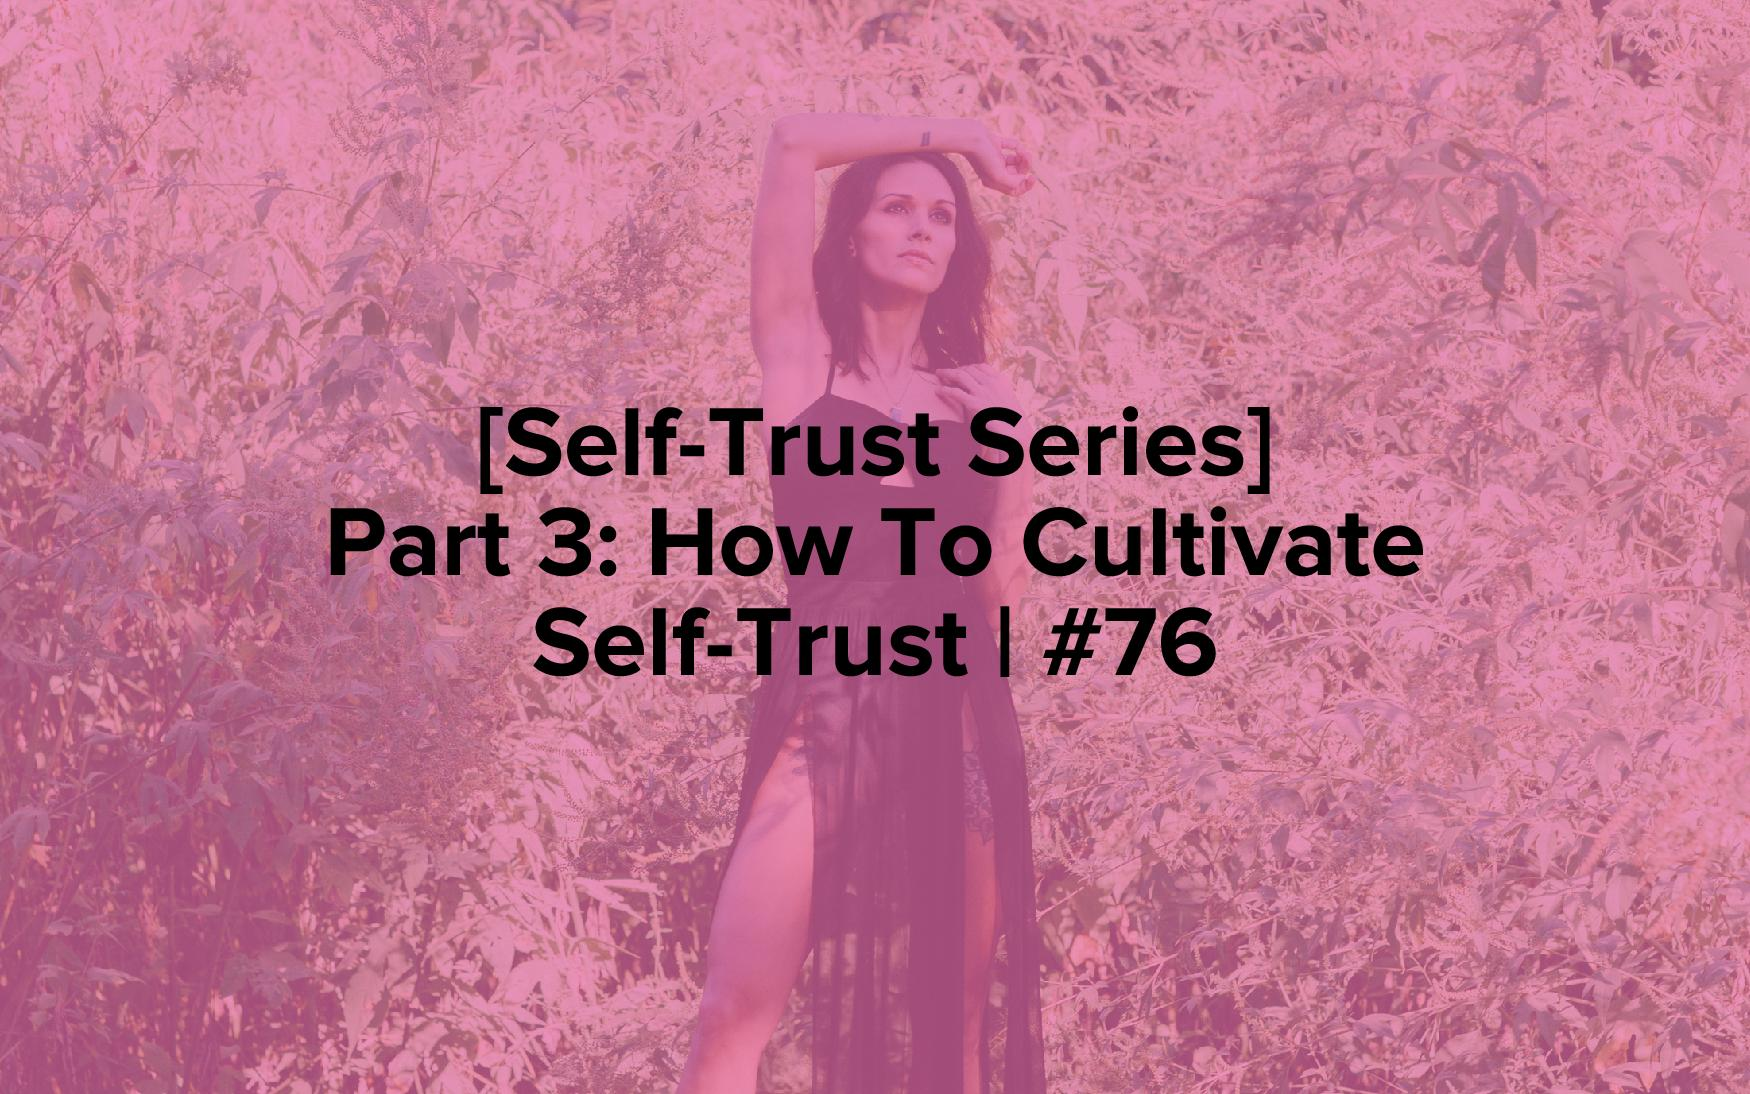 """The words """"[Self-Trust Series] Part 3: How To Cultivate Self-Trust 